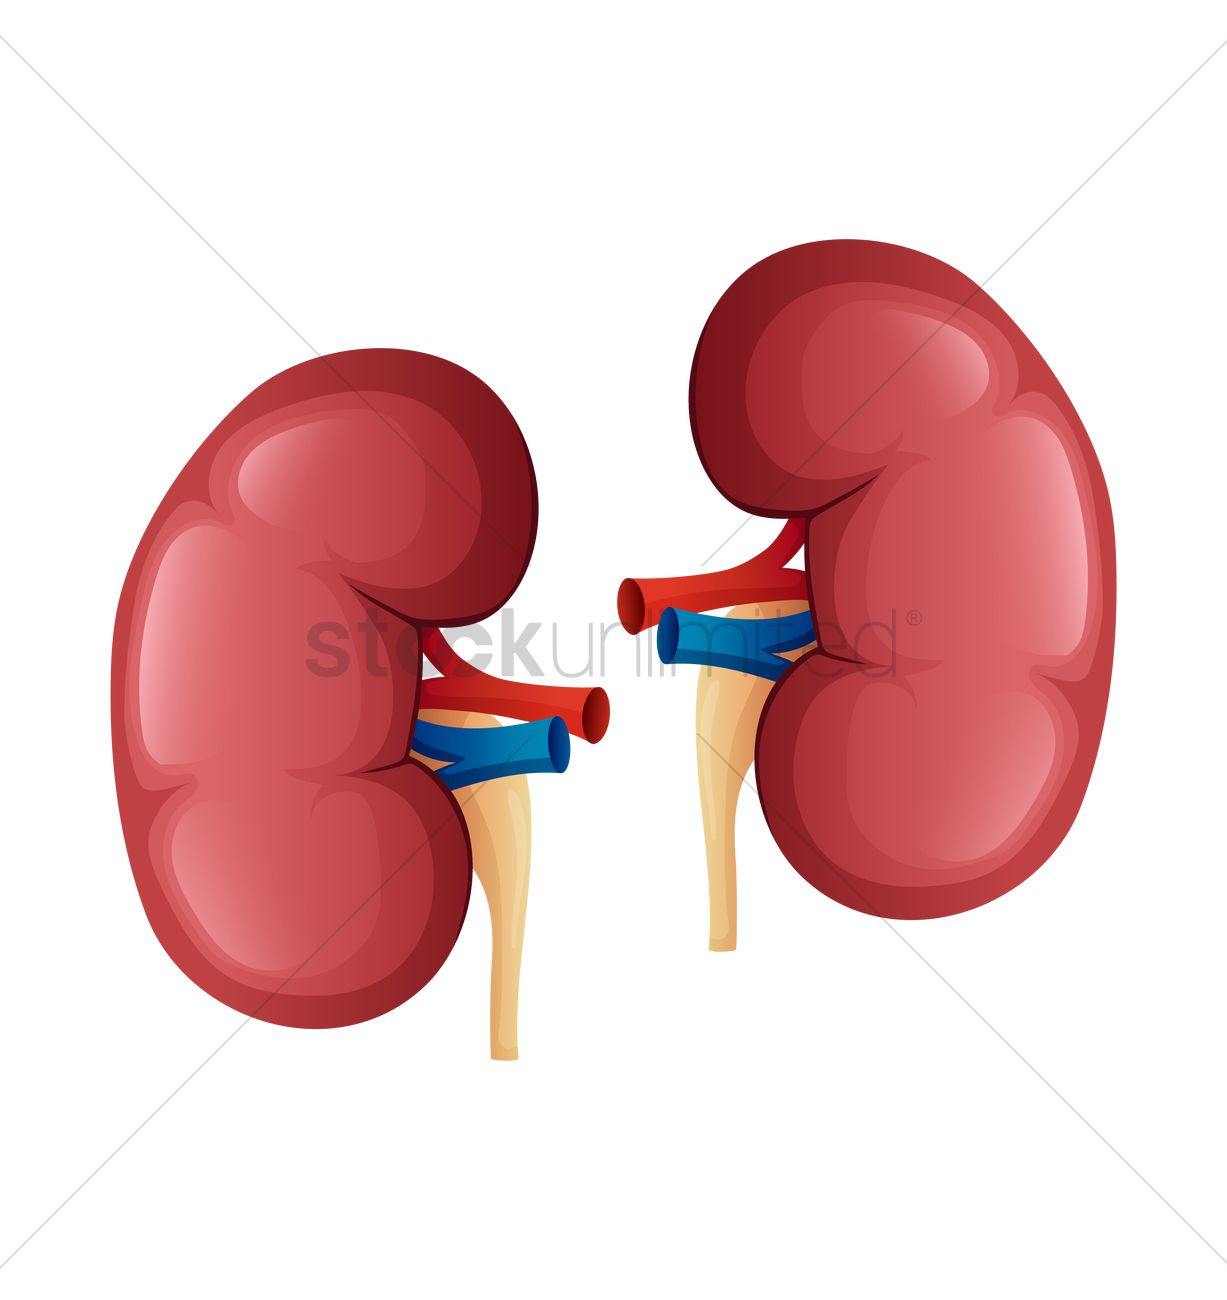 Kidneys clipart jpg black and white stock Kidneys Clipart | Free download best Kidneys Clipart on ... jpg black and white stock